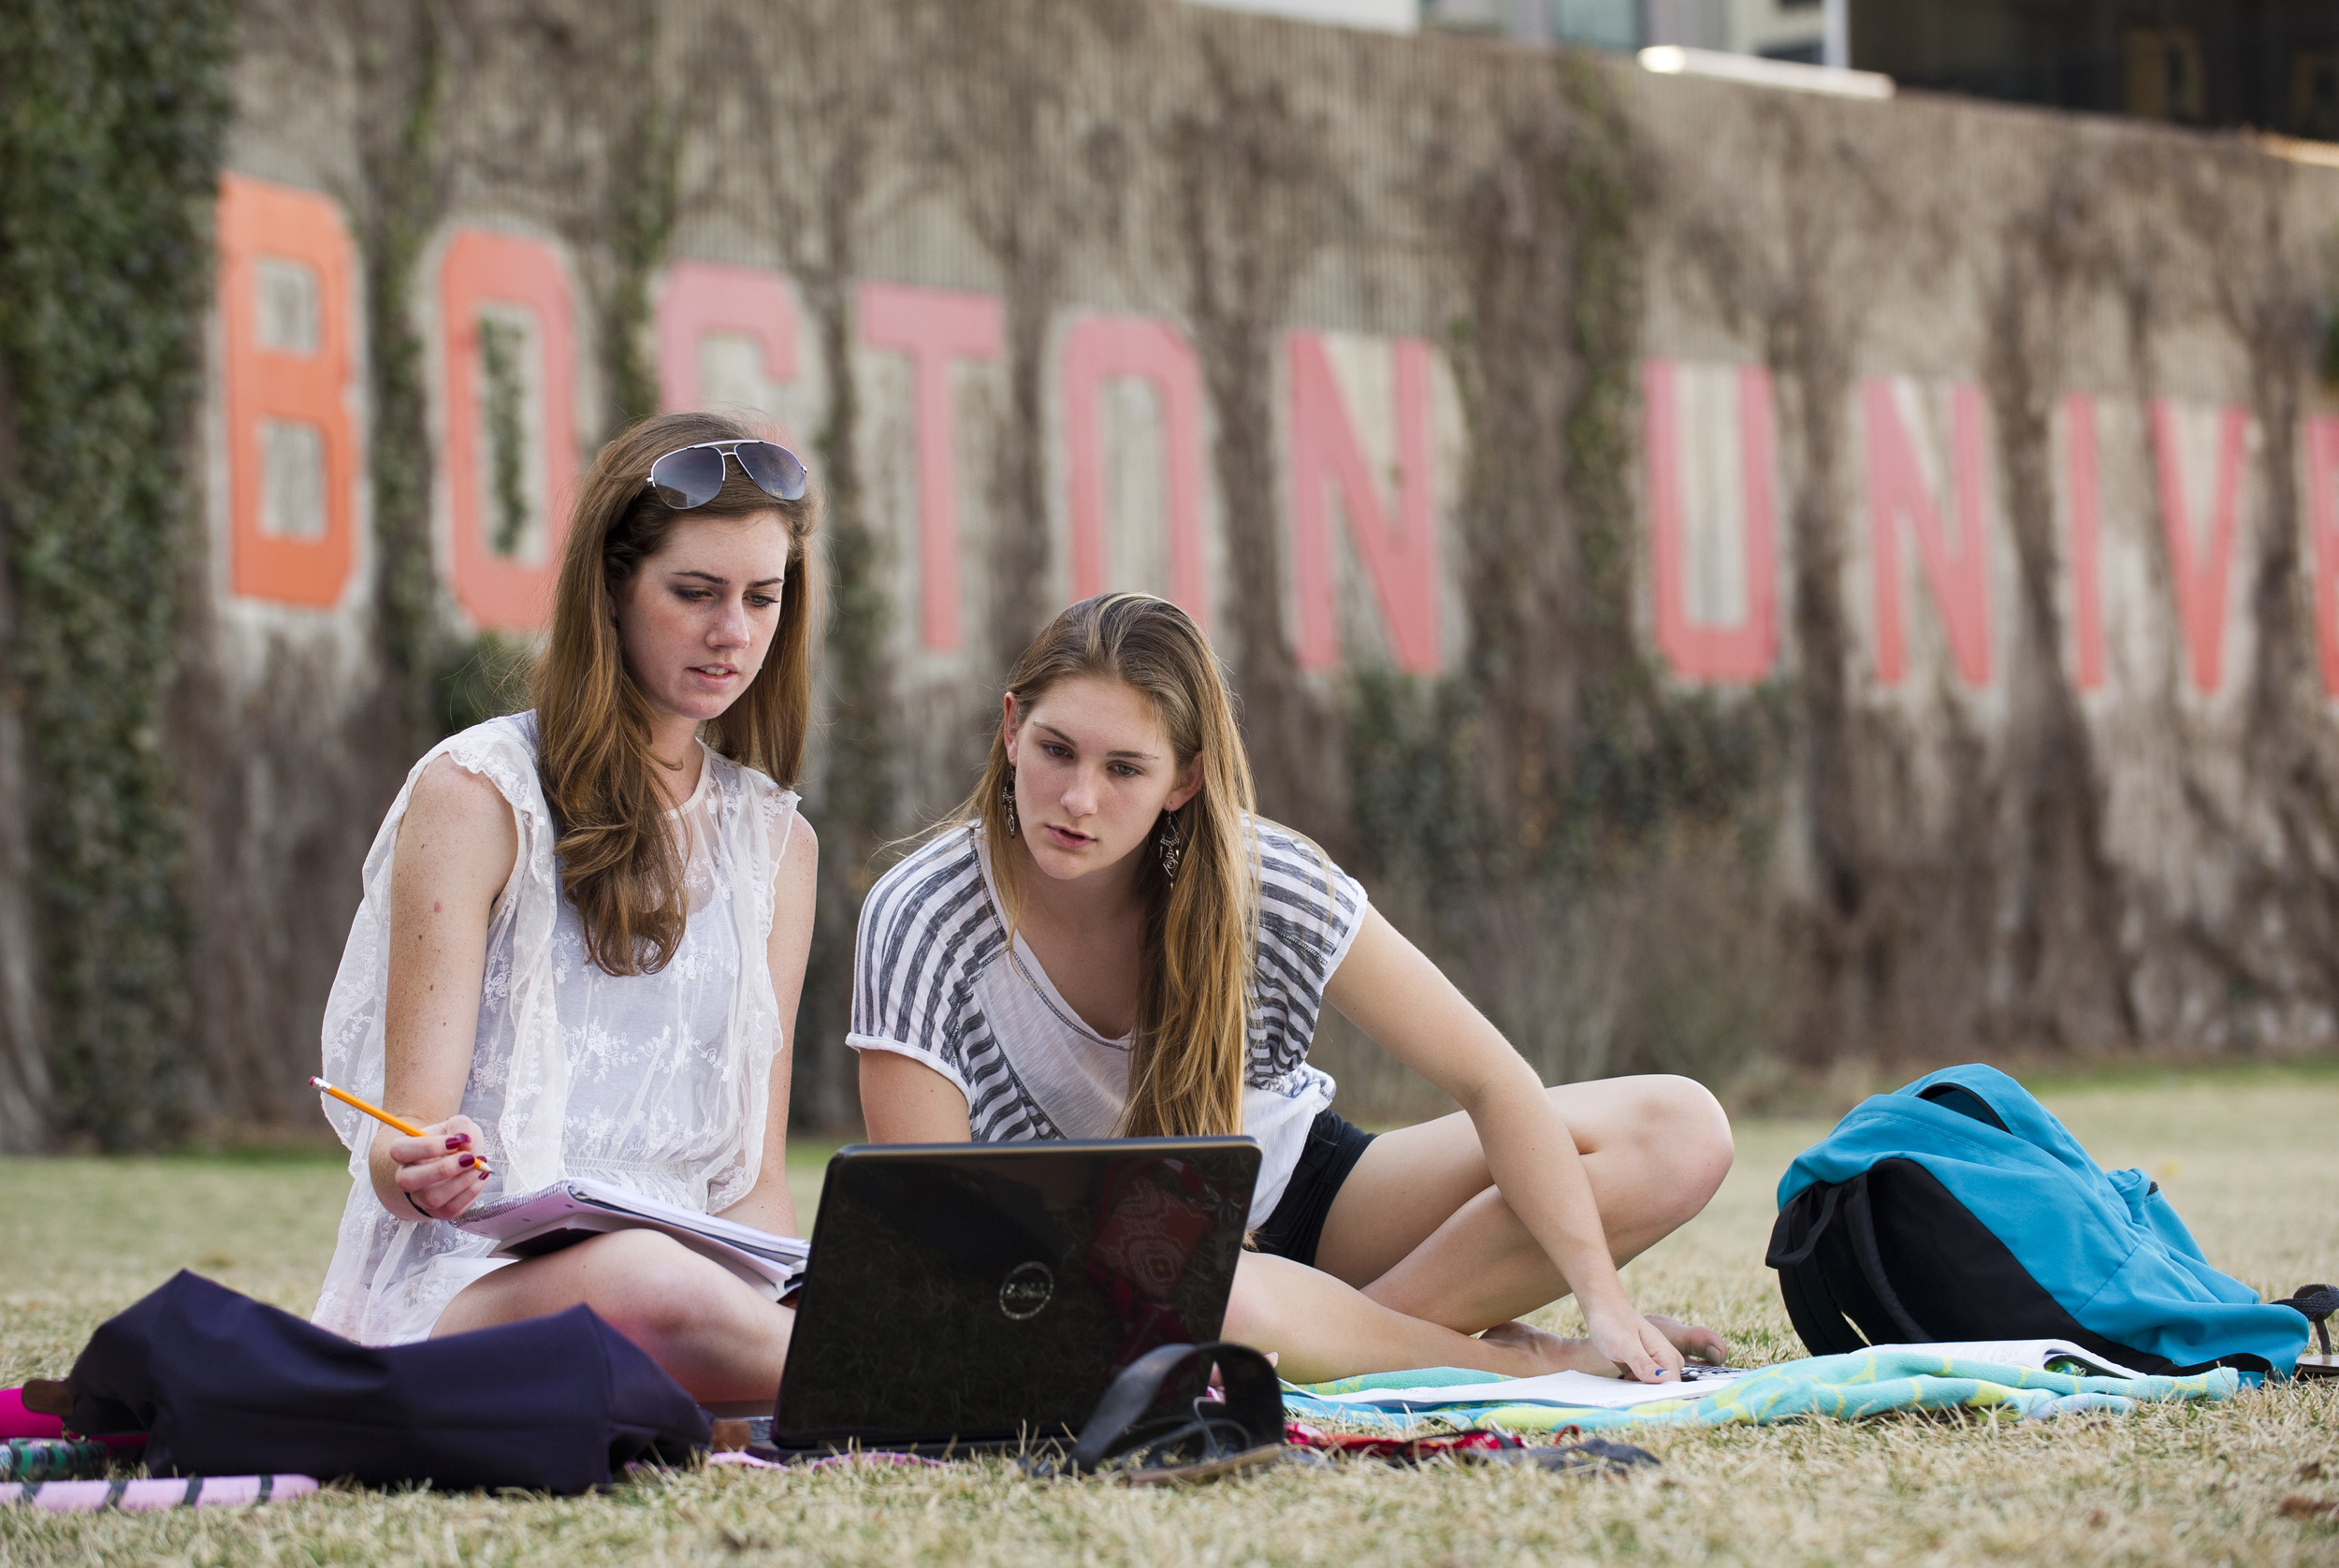 Kelsey Young (COM'15), left, and Boone Saunders (CAS'15) study statistics for class in the shade on Nickerson field. They had started in the sun, the two said, but it got too hot.  Nickerson field March 22, 2012.   Photo by Cydney Scott for Boston University Photography